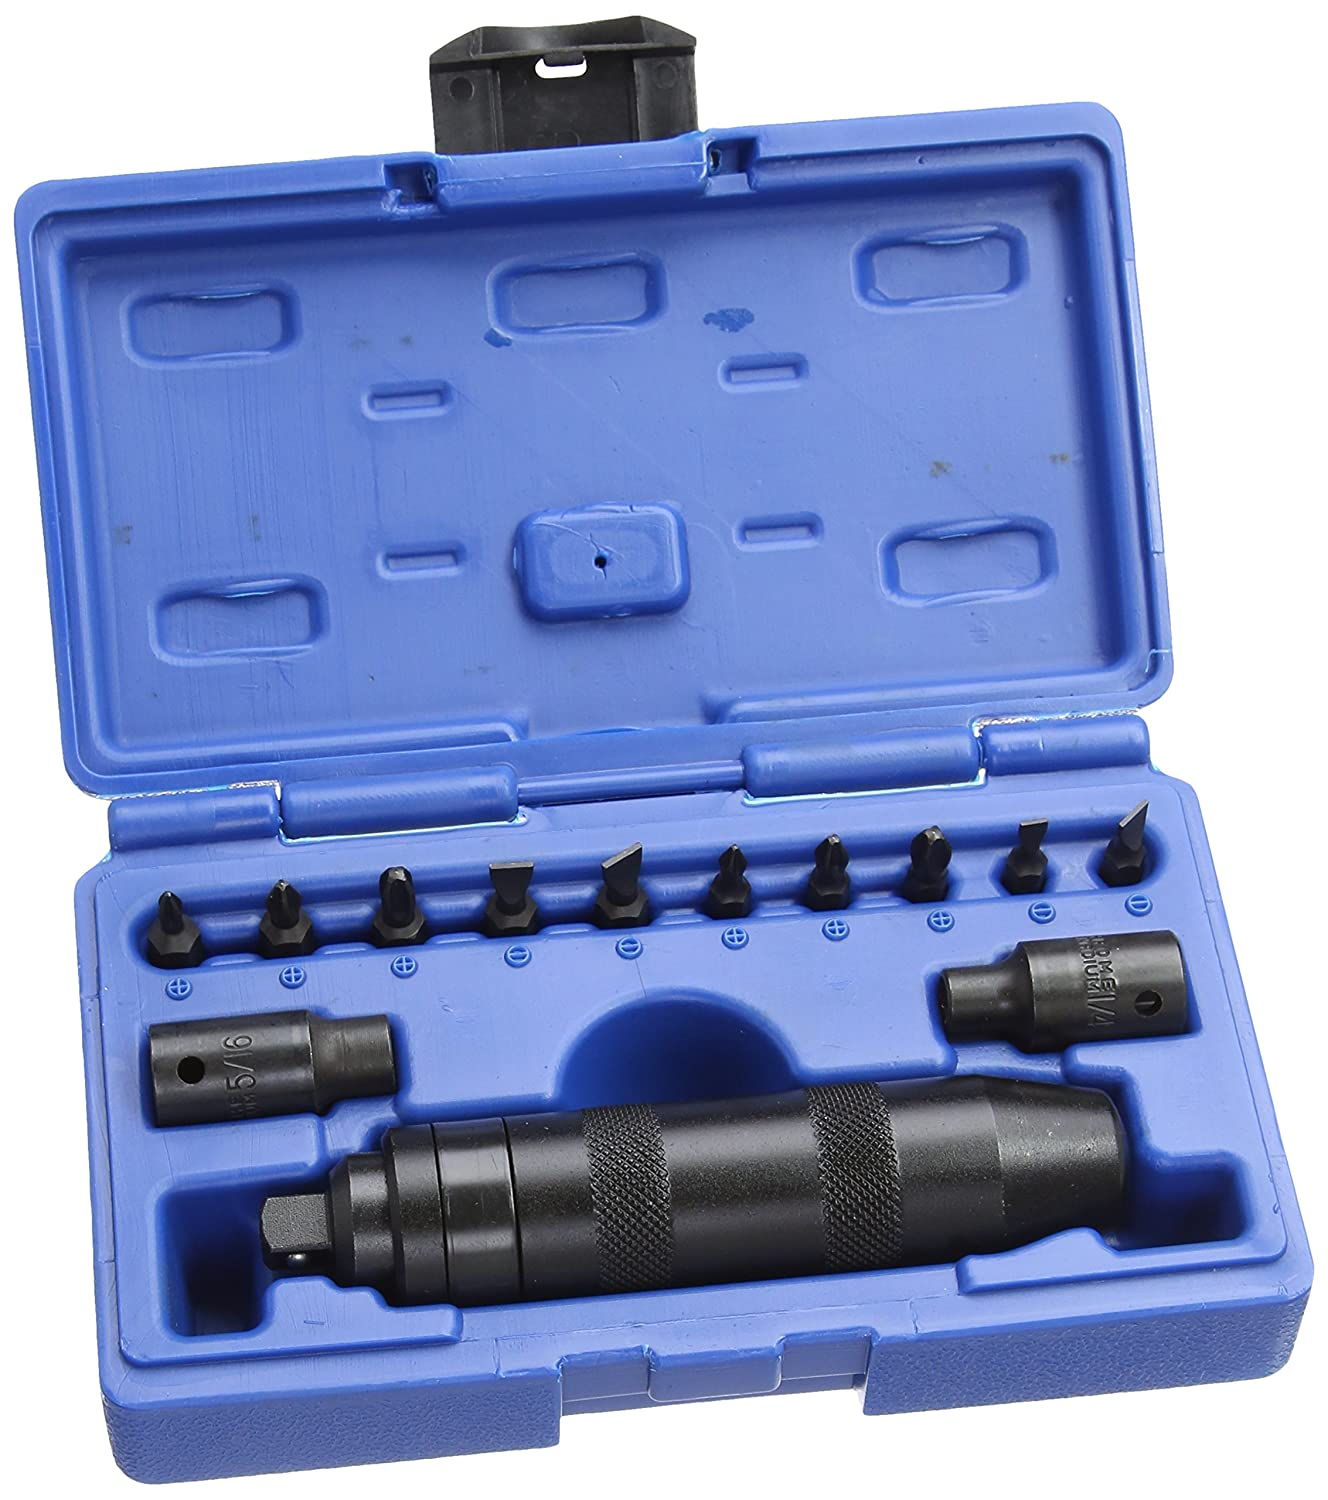 Laser 3456 Impact Driver, 3/8-inch Dia, Set of 13 The Tool Connection Ltd.